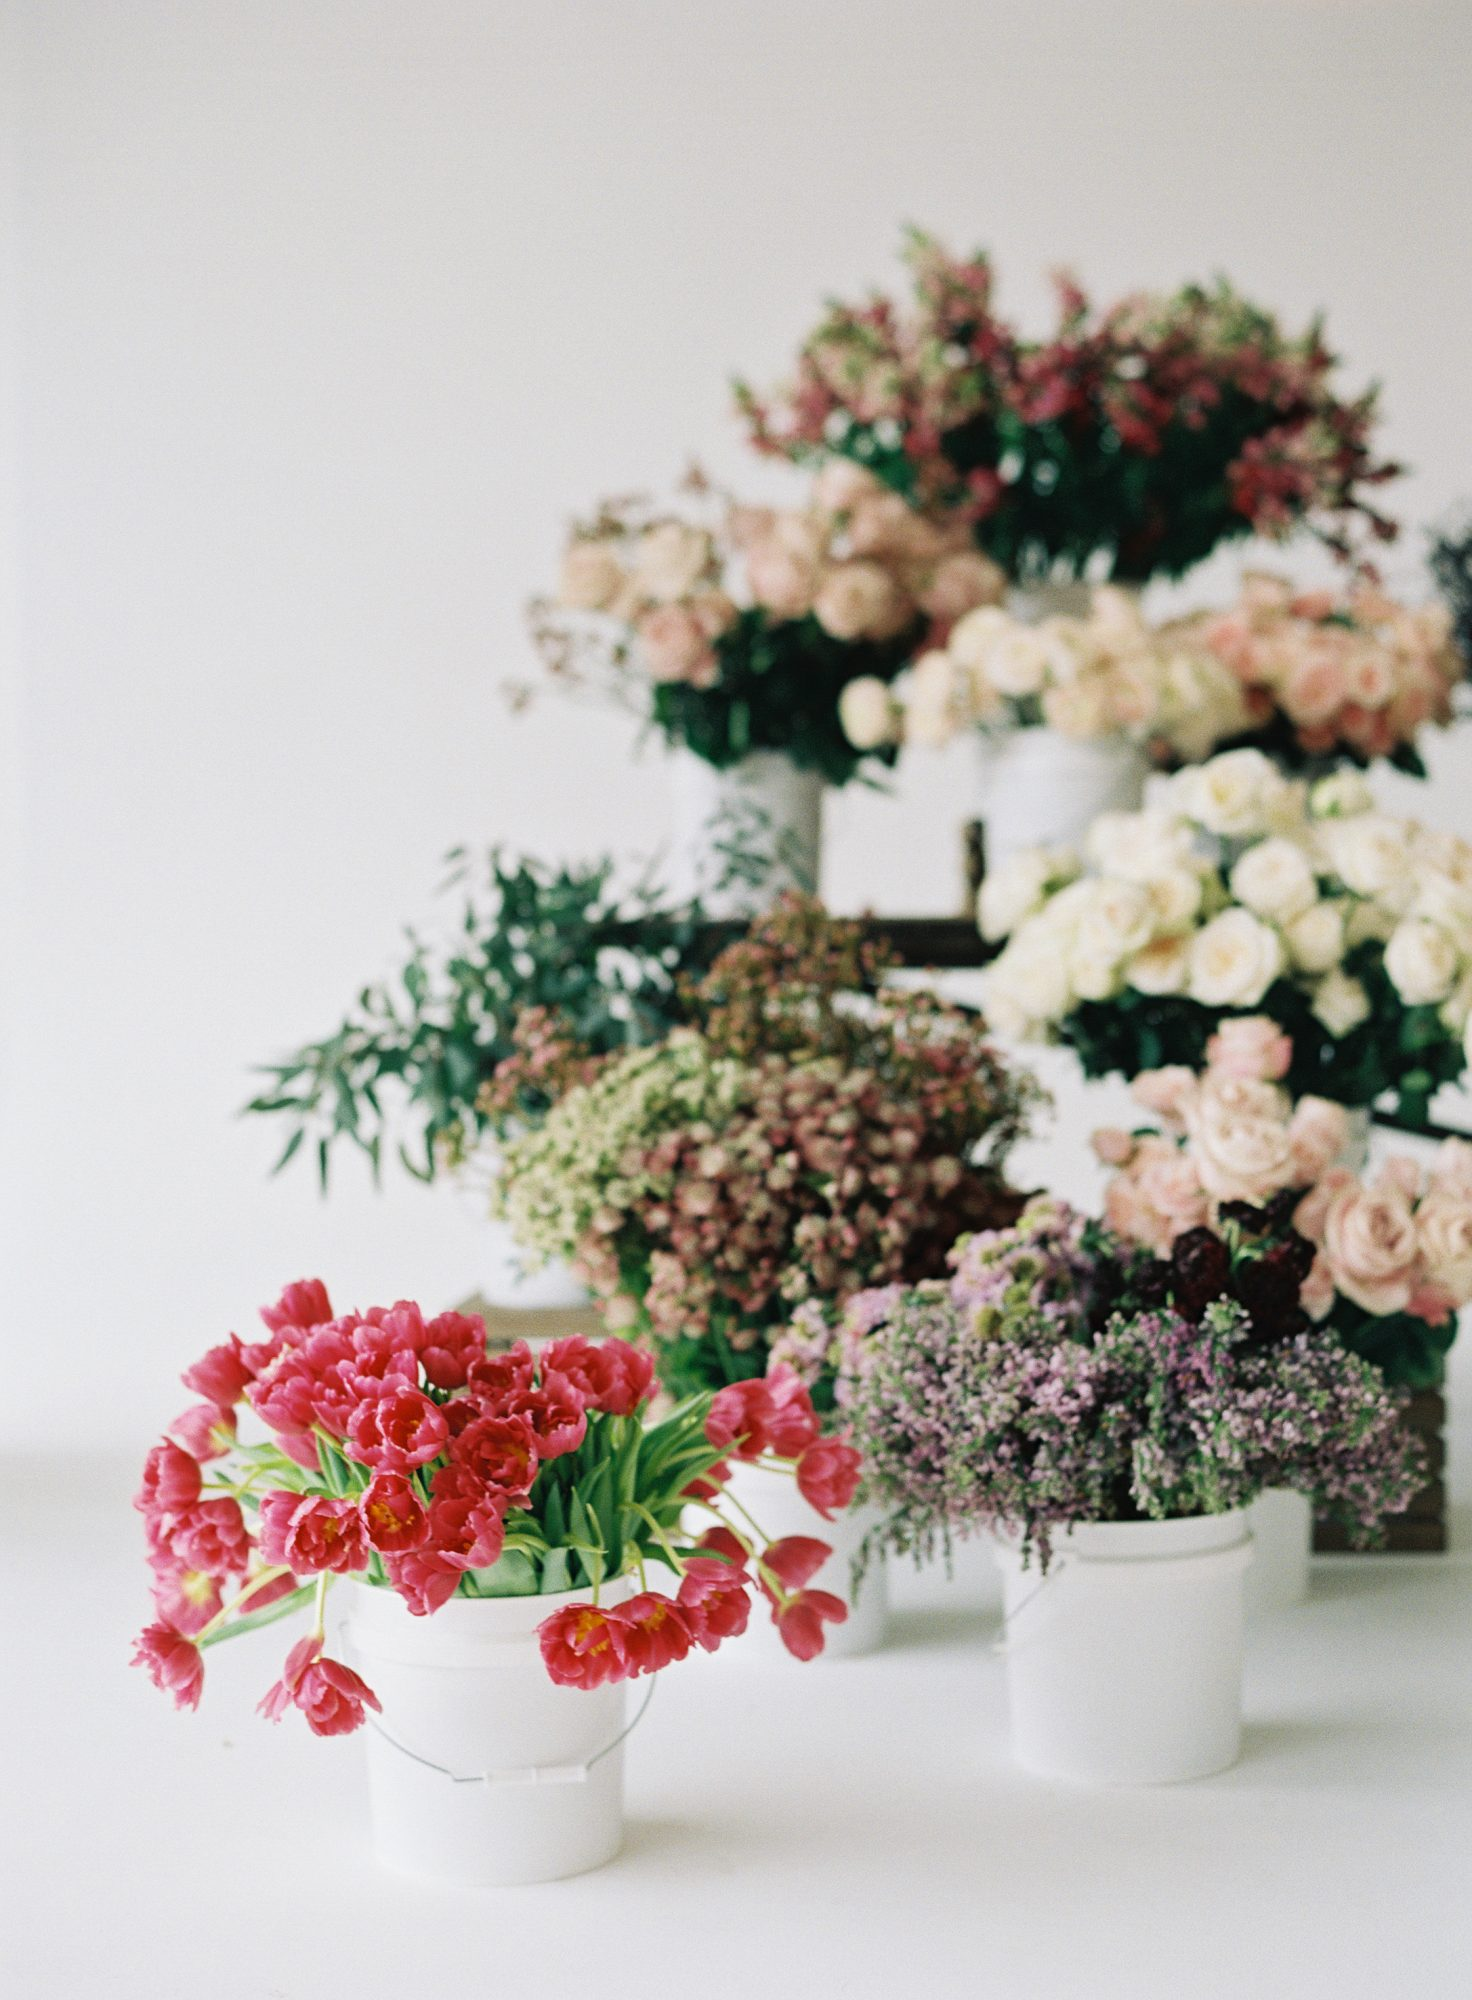 Decorate With Buckets of Flowers